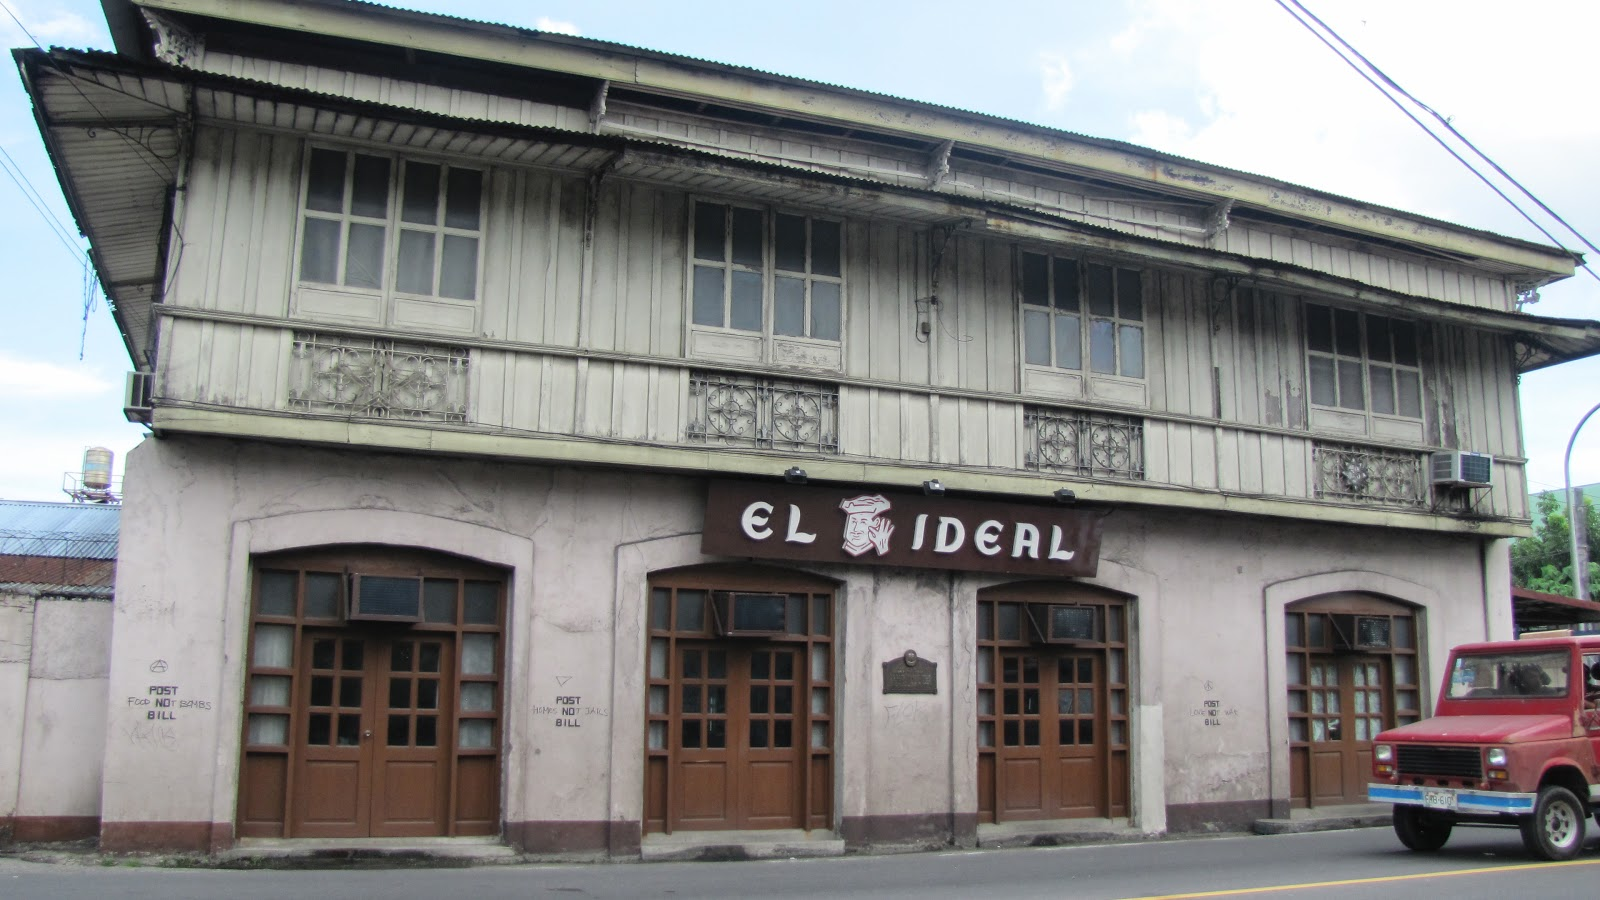 Silay City, Bacolod, Silay, El Ideal, Heritage sites, Oldest Bakery in Silay City, FTW! Travels